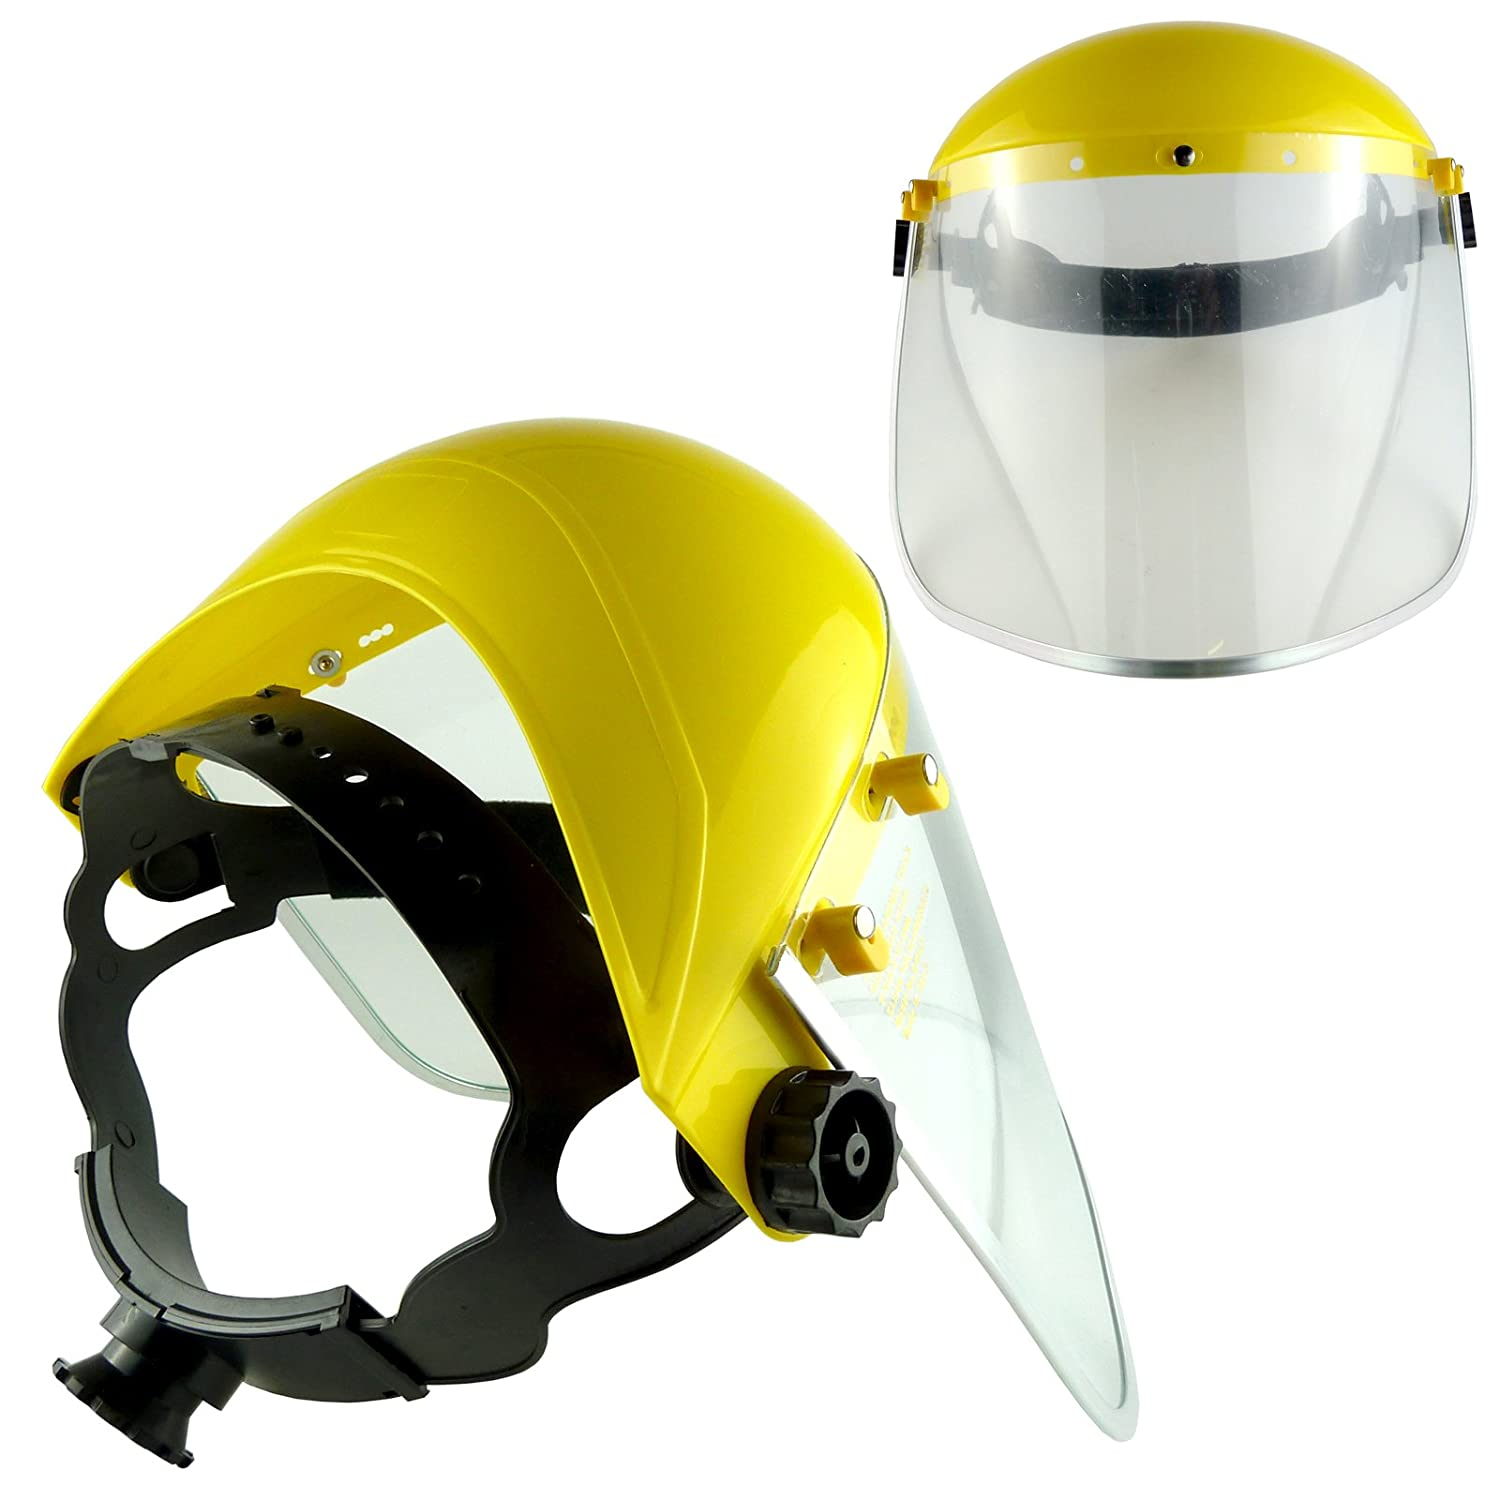 Face Shield - Brow Guard With Polycarbonate Visor (Pack of 1) Bid Buy Direct